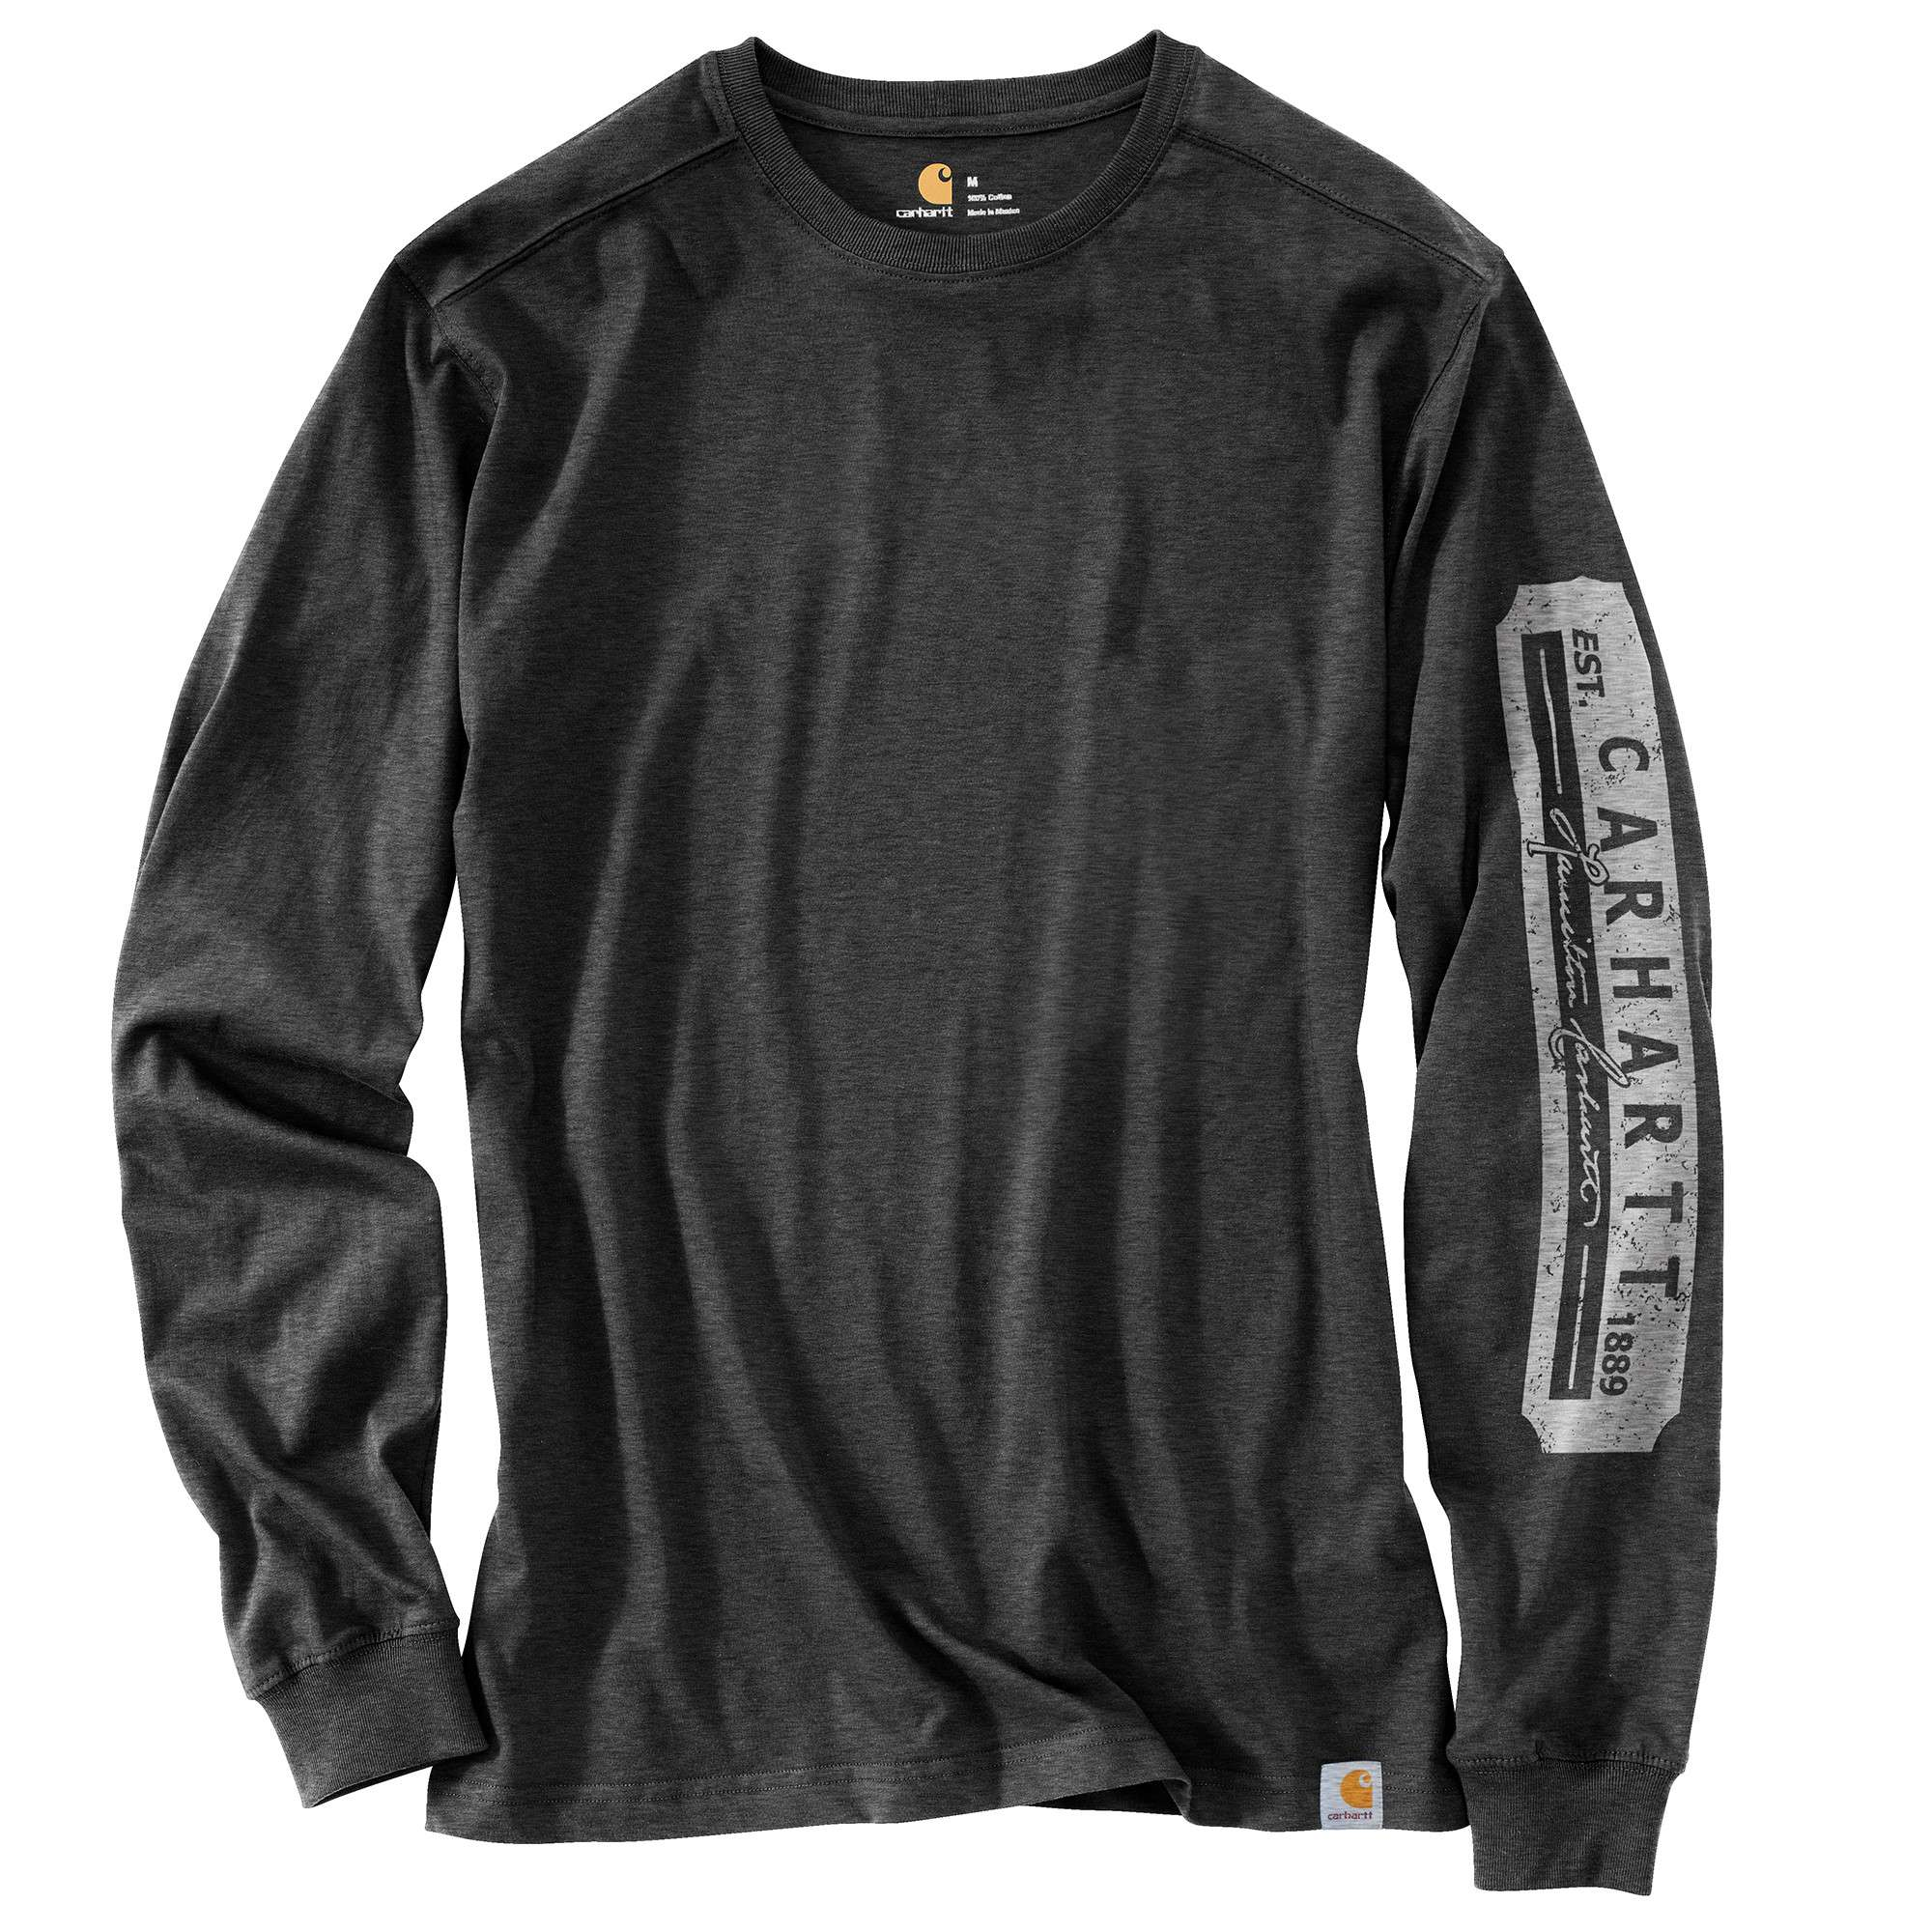 MEN'S MADDOCK HERITAGE LONG-SLEEVE T-SHIRT